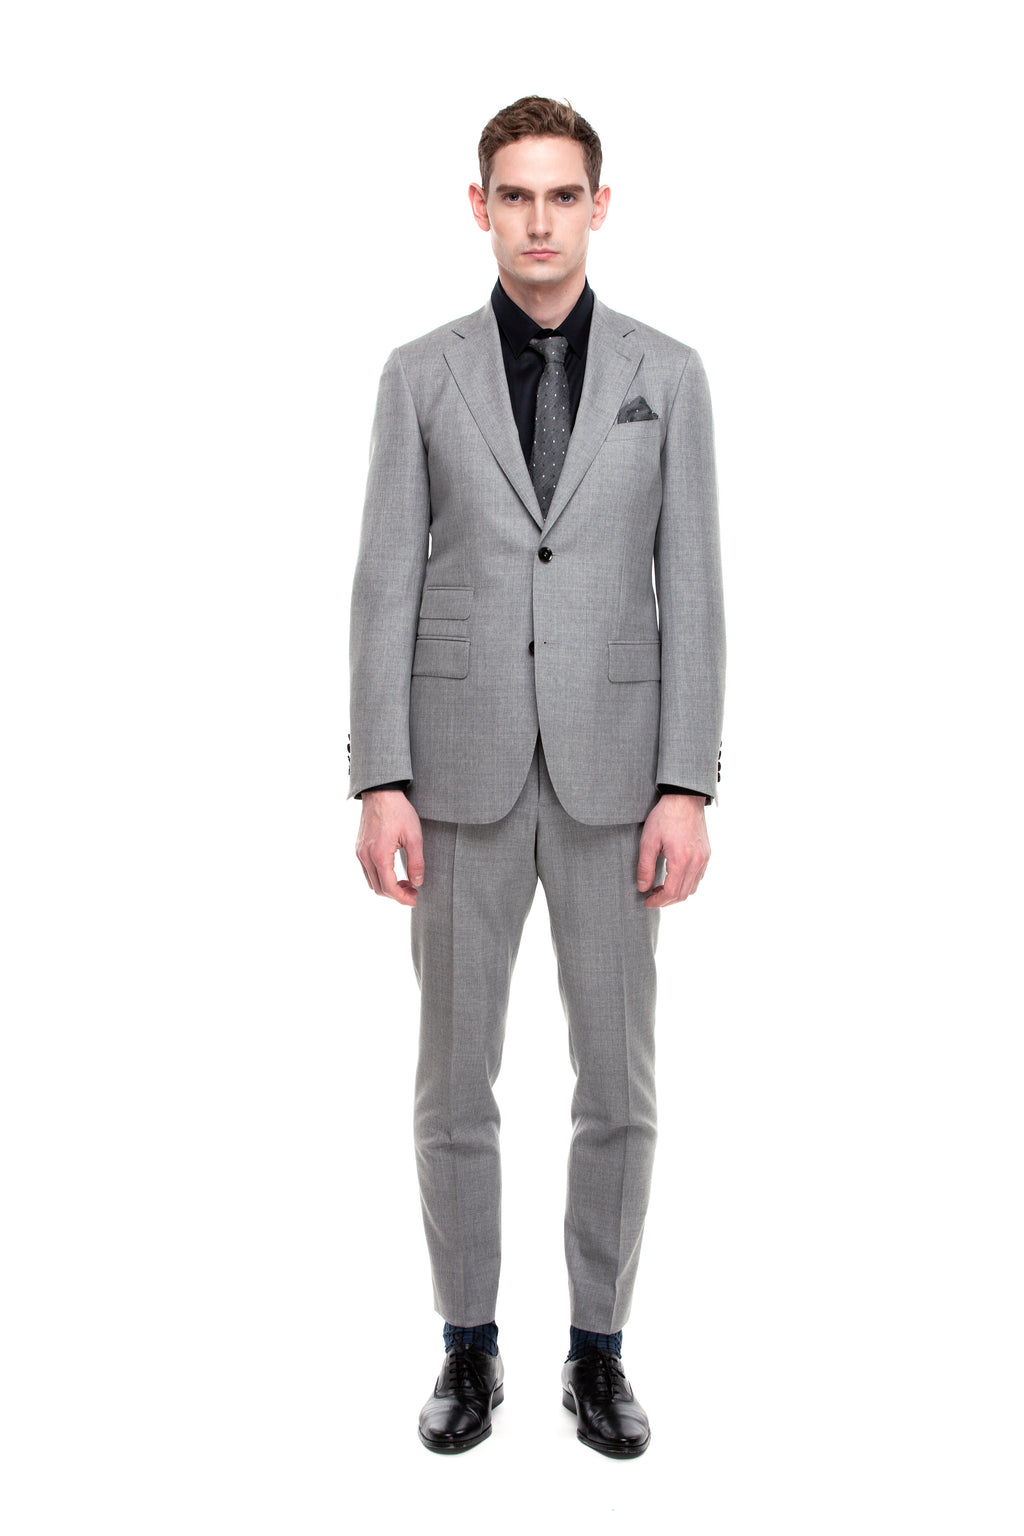 Custom Grey Signature Office Suit ottotos